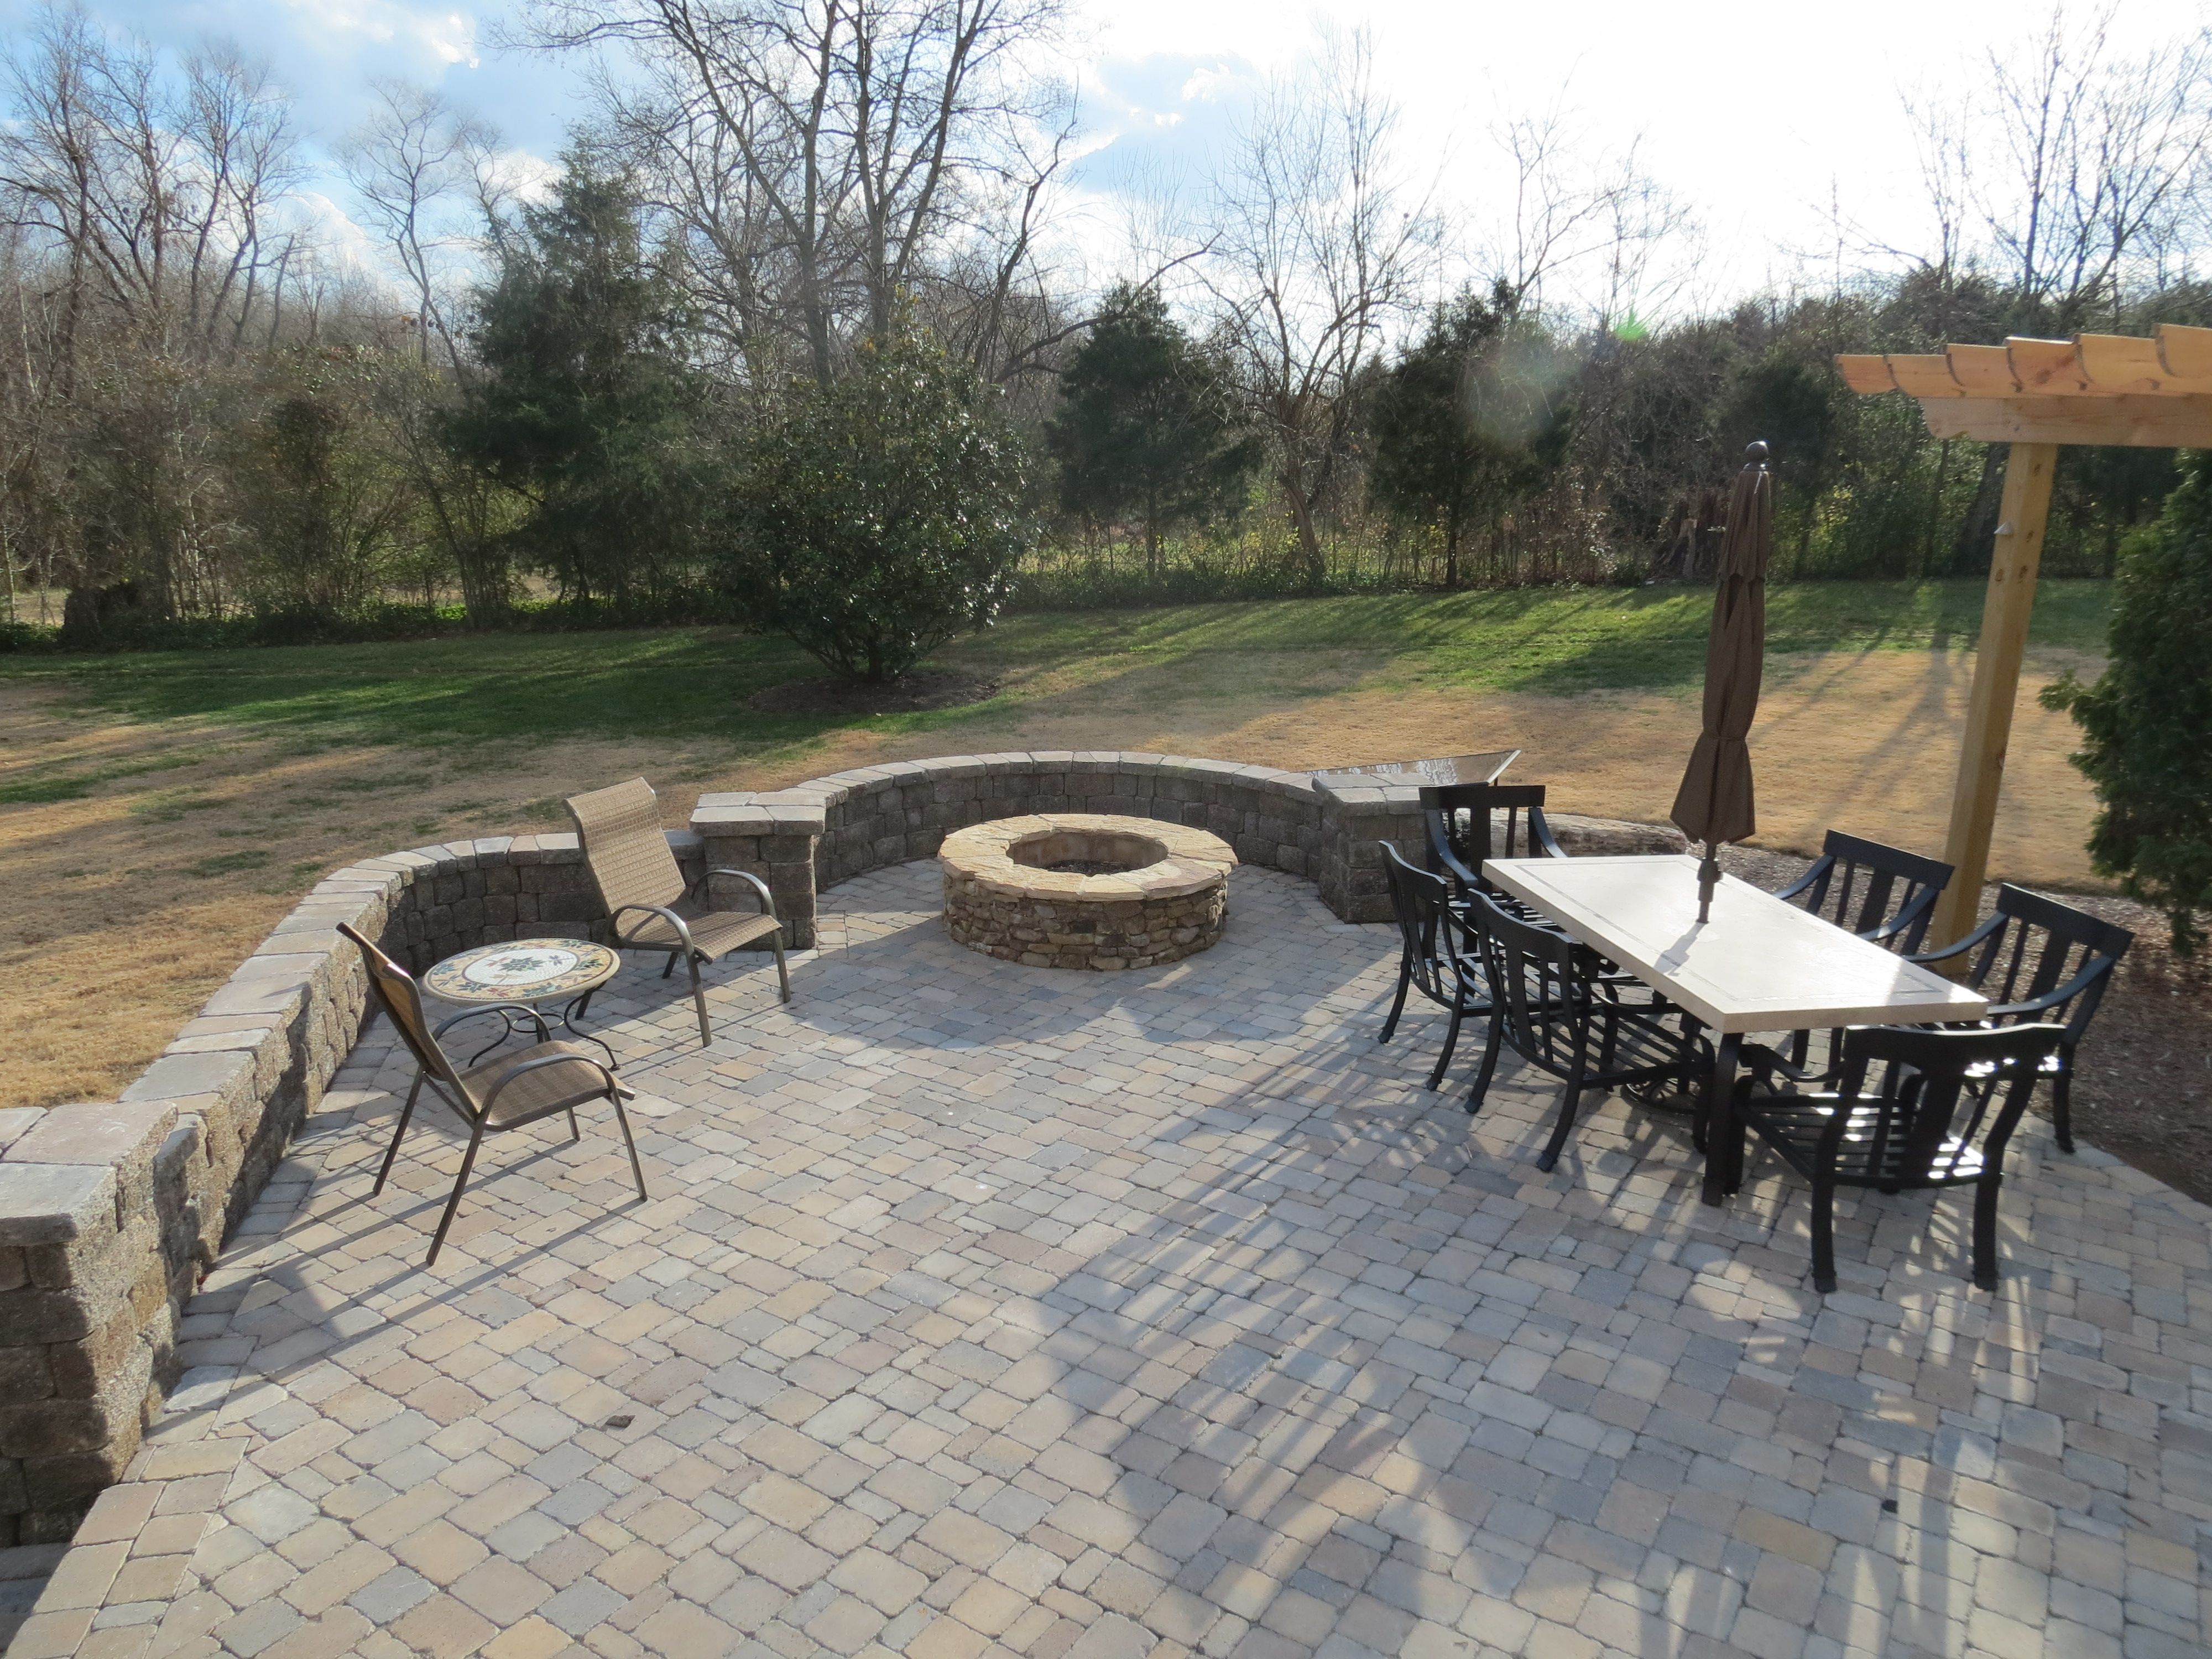 Backyard brick paver patio with natural stone fireplace columns and